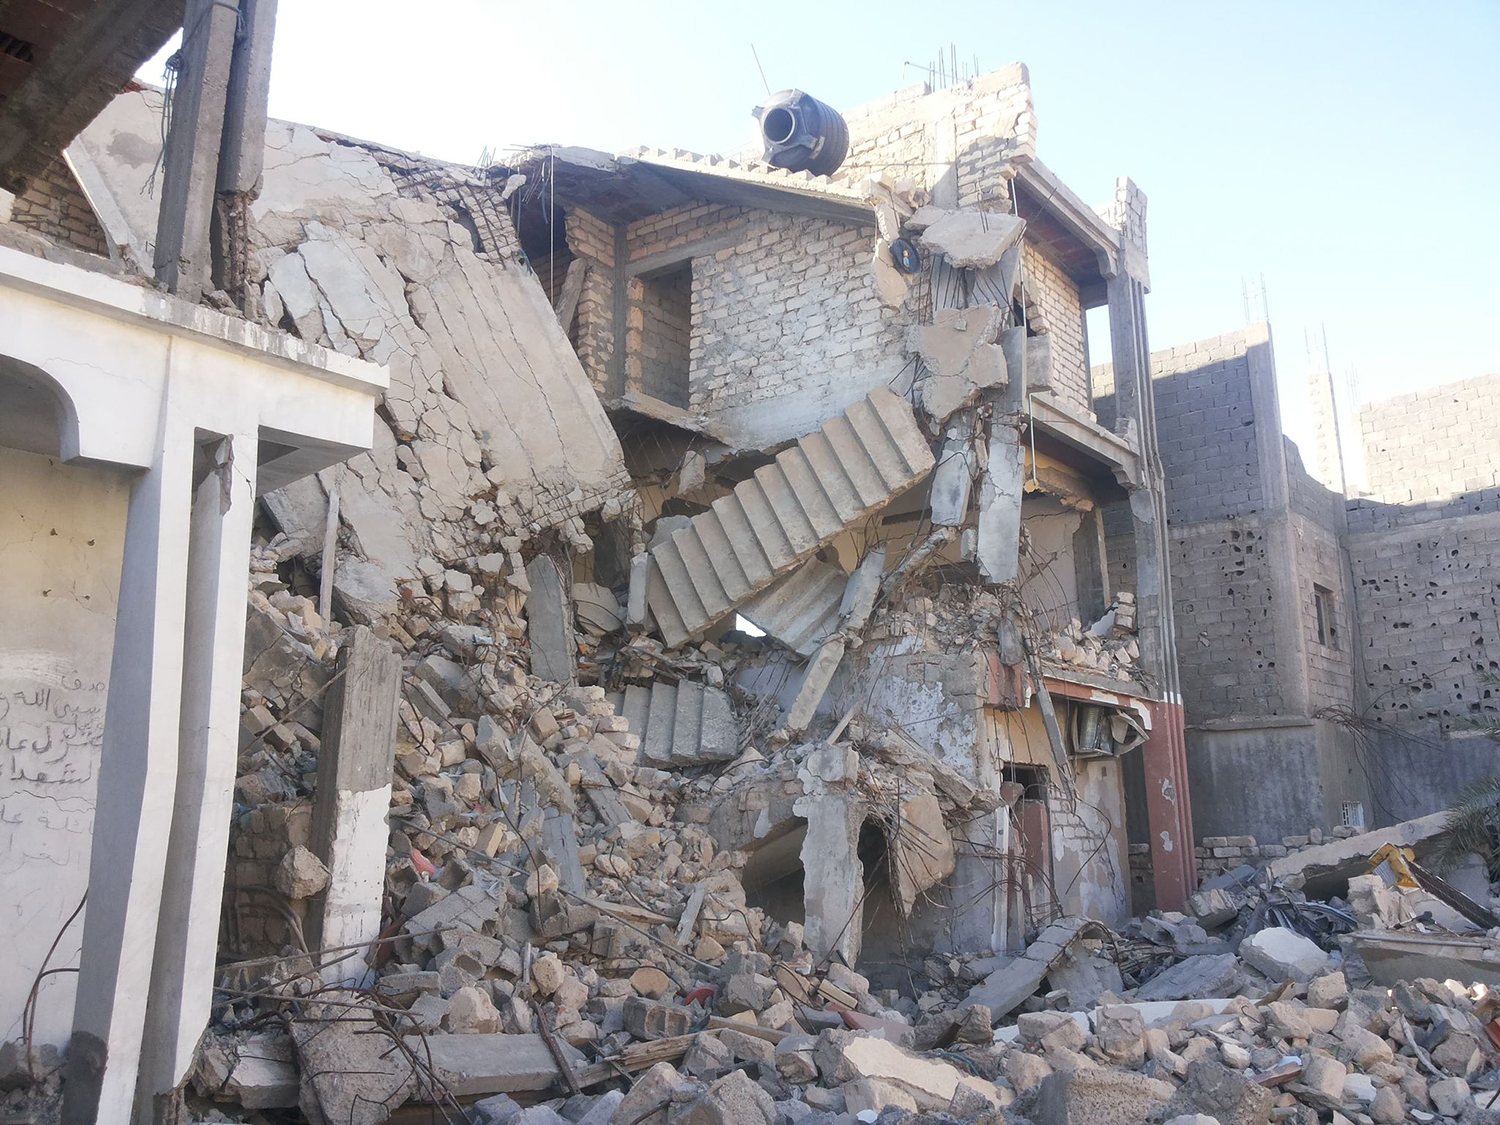 The Gharari family home after an airstrike in the Souq al-Jumaa region of Tripoli on June 20, 2011.